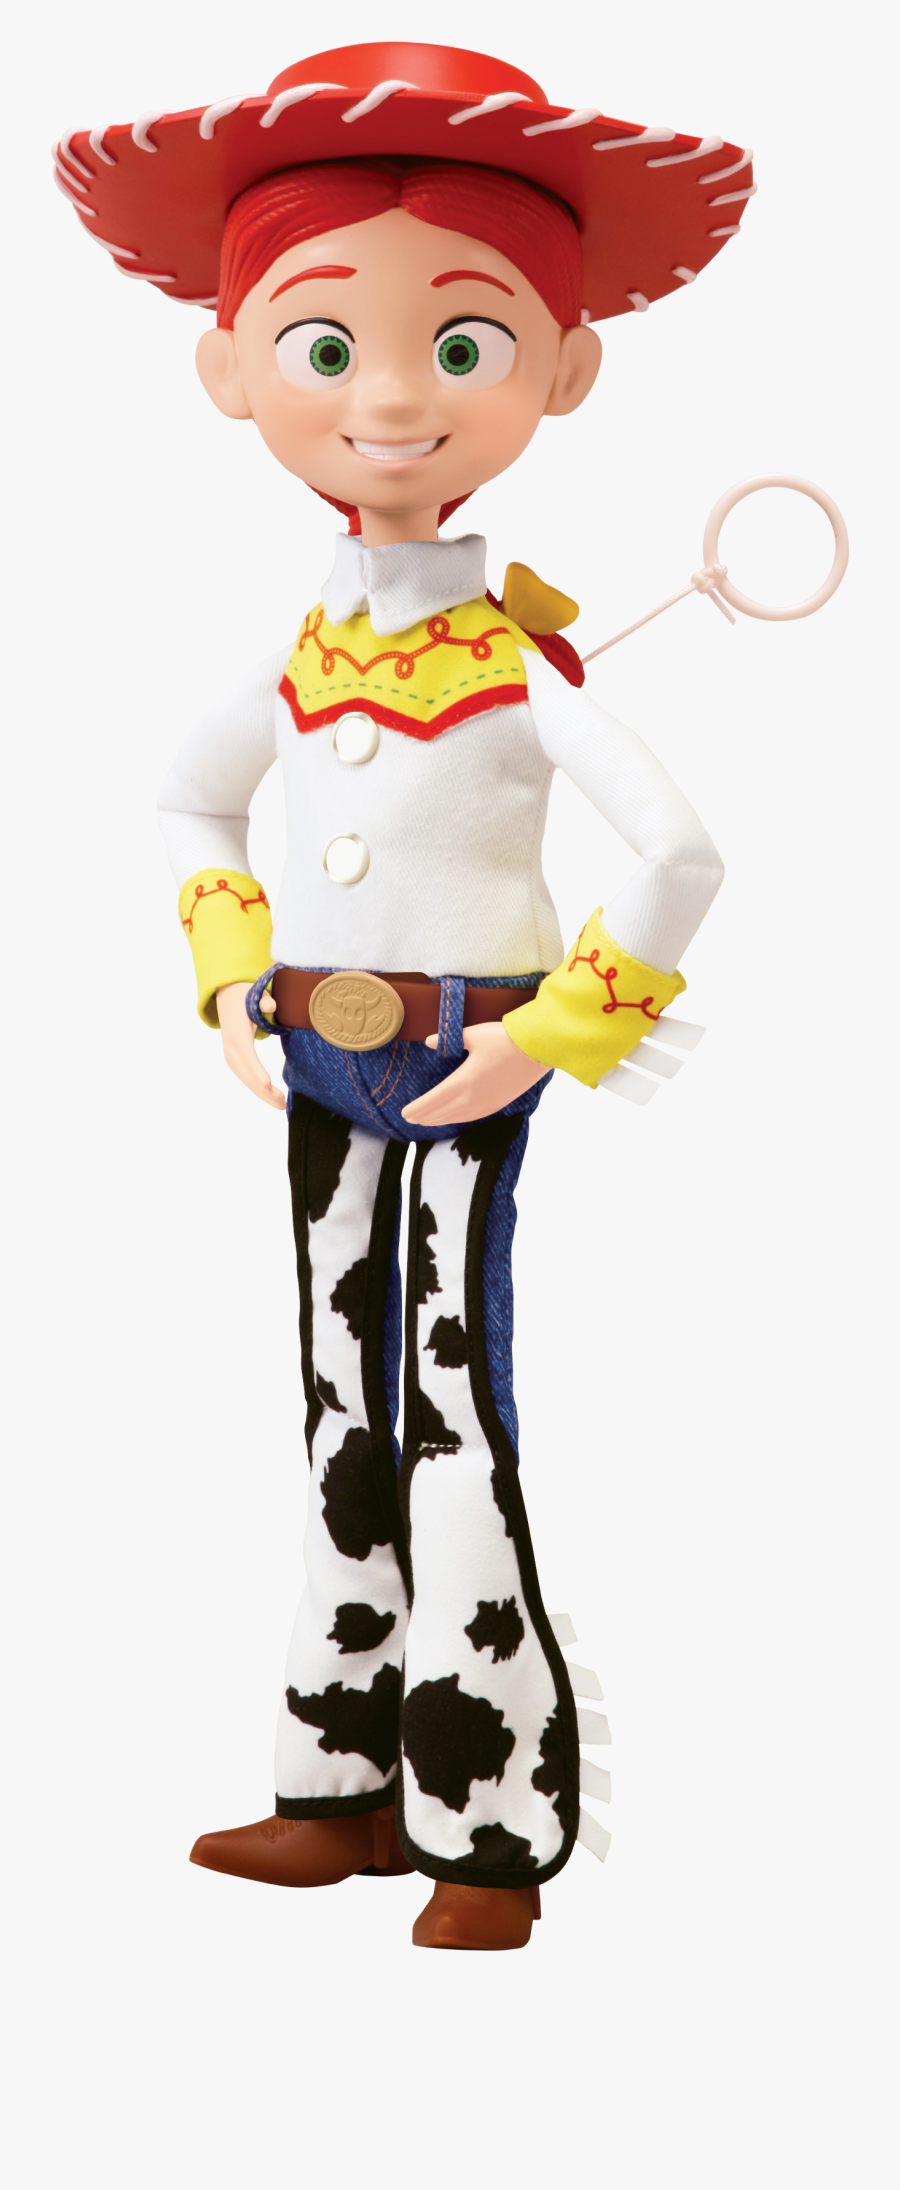 Toy Story 4 Life Size Talking Jessie Action Figure - Toy Story Jessie And Bo Peep, Transparent Clipart